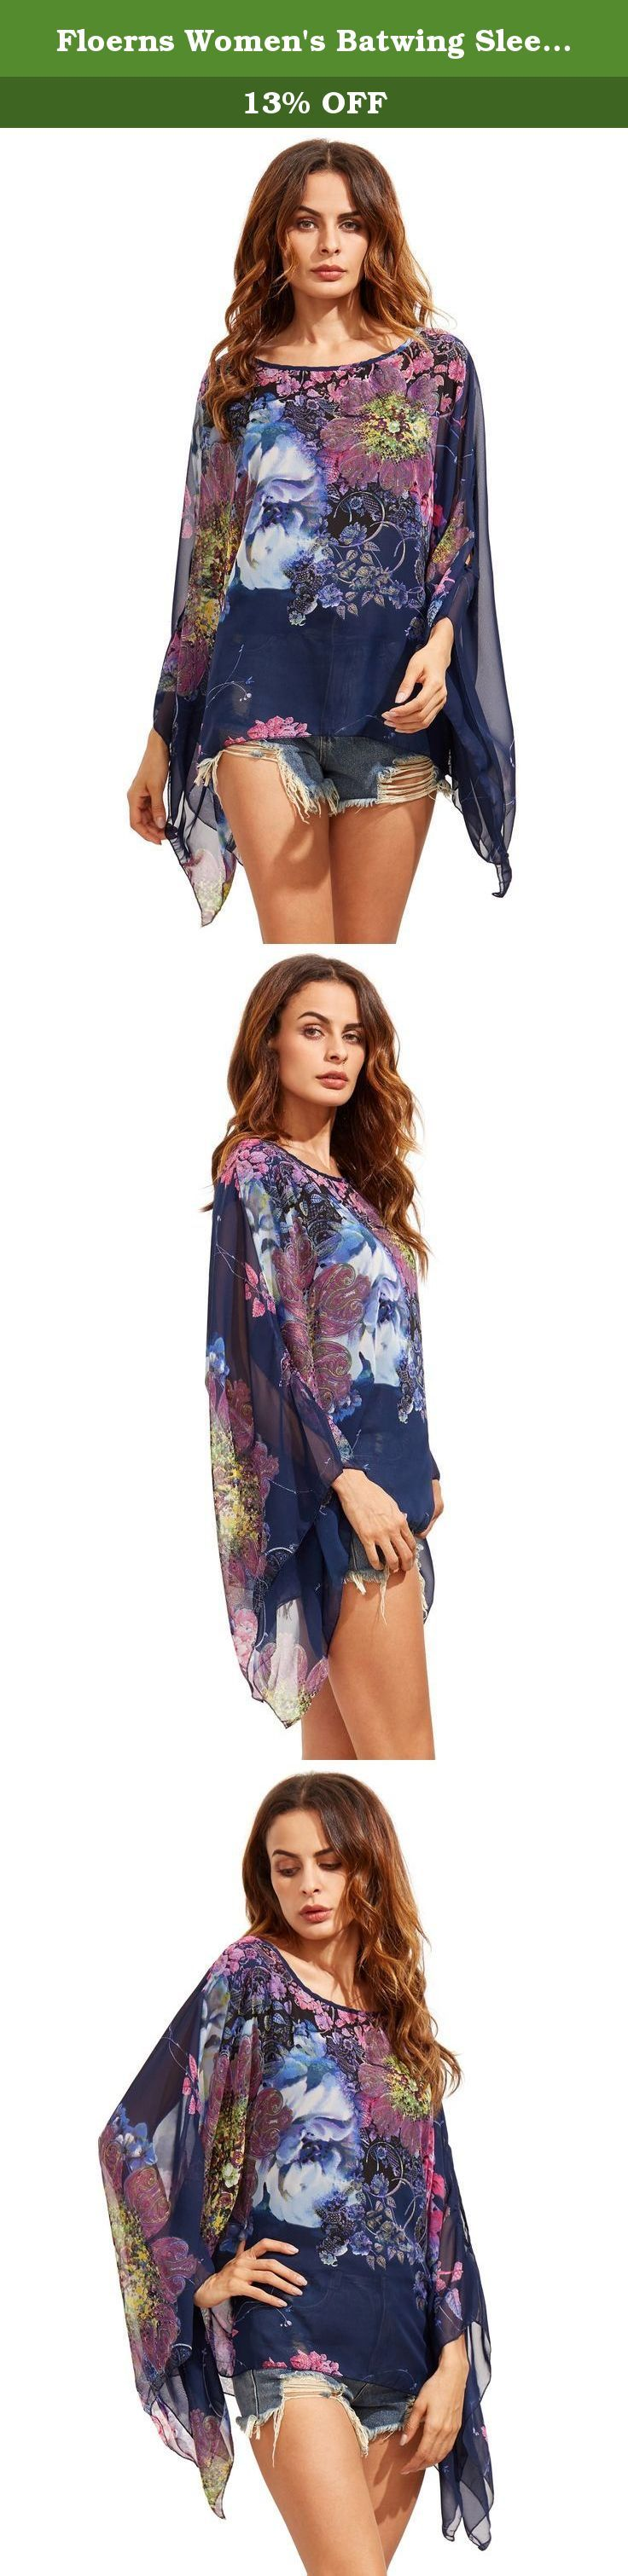 Floerns Women's Batwing Sleeve Chiffon Tunic Top Loose Blouse Cover Up Navy M. Size Chart: Navy: One Size: Bust: 74.0 inch, Length: 26.8 inch, Sleeve Length: 21.3 inch Black: One Size: Bust: 40.2 inch, Length: 26.4 inch, Sleeve Length: 21.3 inch Pink: One Size: Bust: 40.2 inch, Length: 26.4 inch, Sleeve Length: 22.0 inch Yellow: One Size: Bust: 40.2 inch, Length: 26.8 inch, Sleeve Length: 22.0 inch Black White: One Size: Bust: 34.6-47.2 inch, Length: 24.8 inch, Sleeve Length: 21.7 inch .